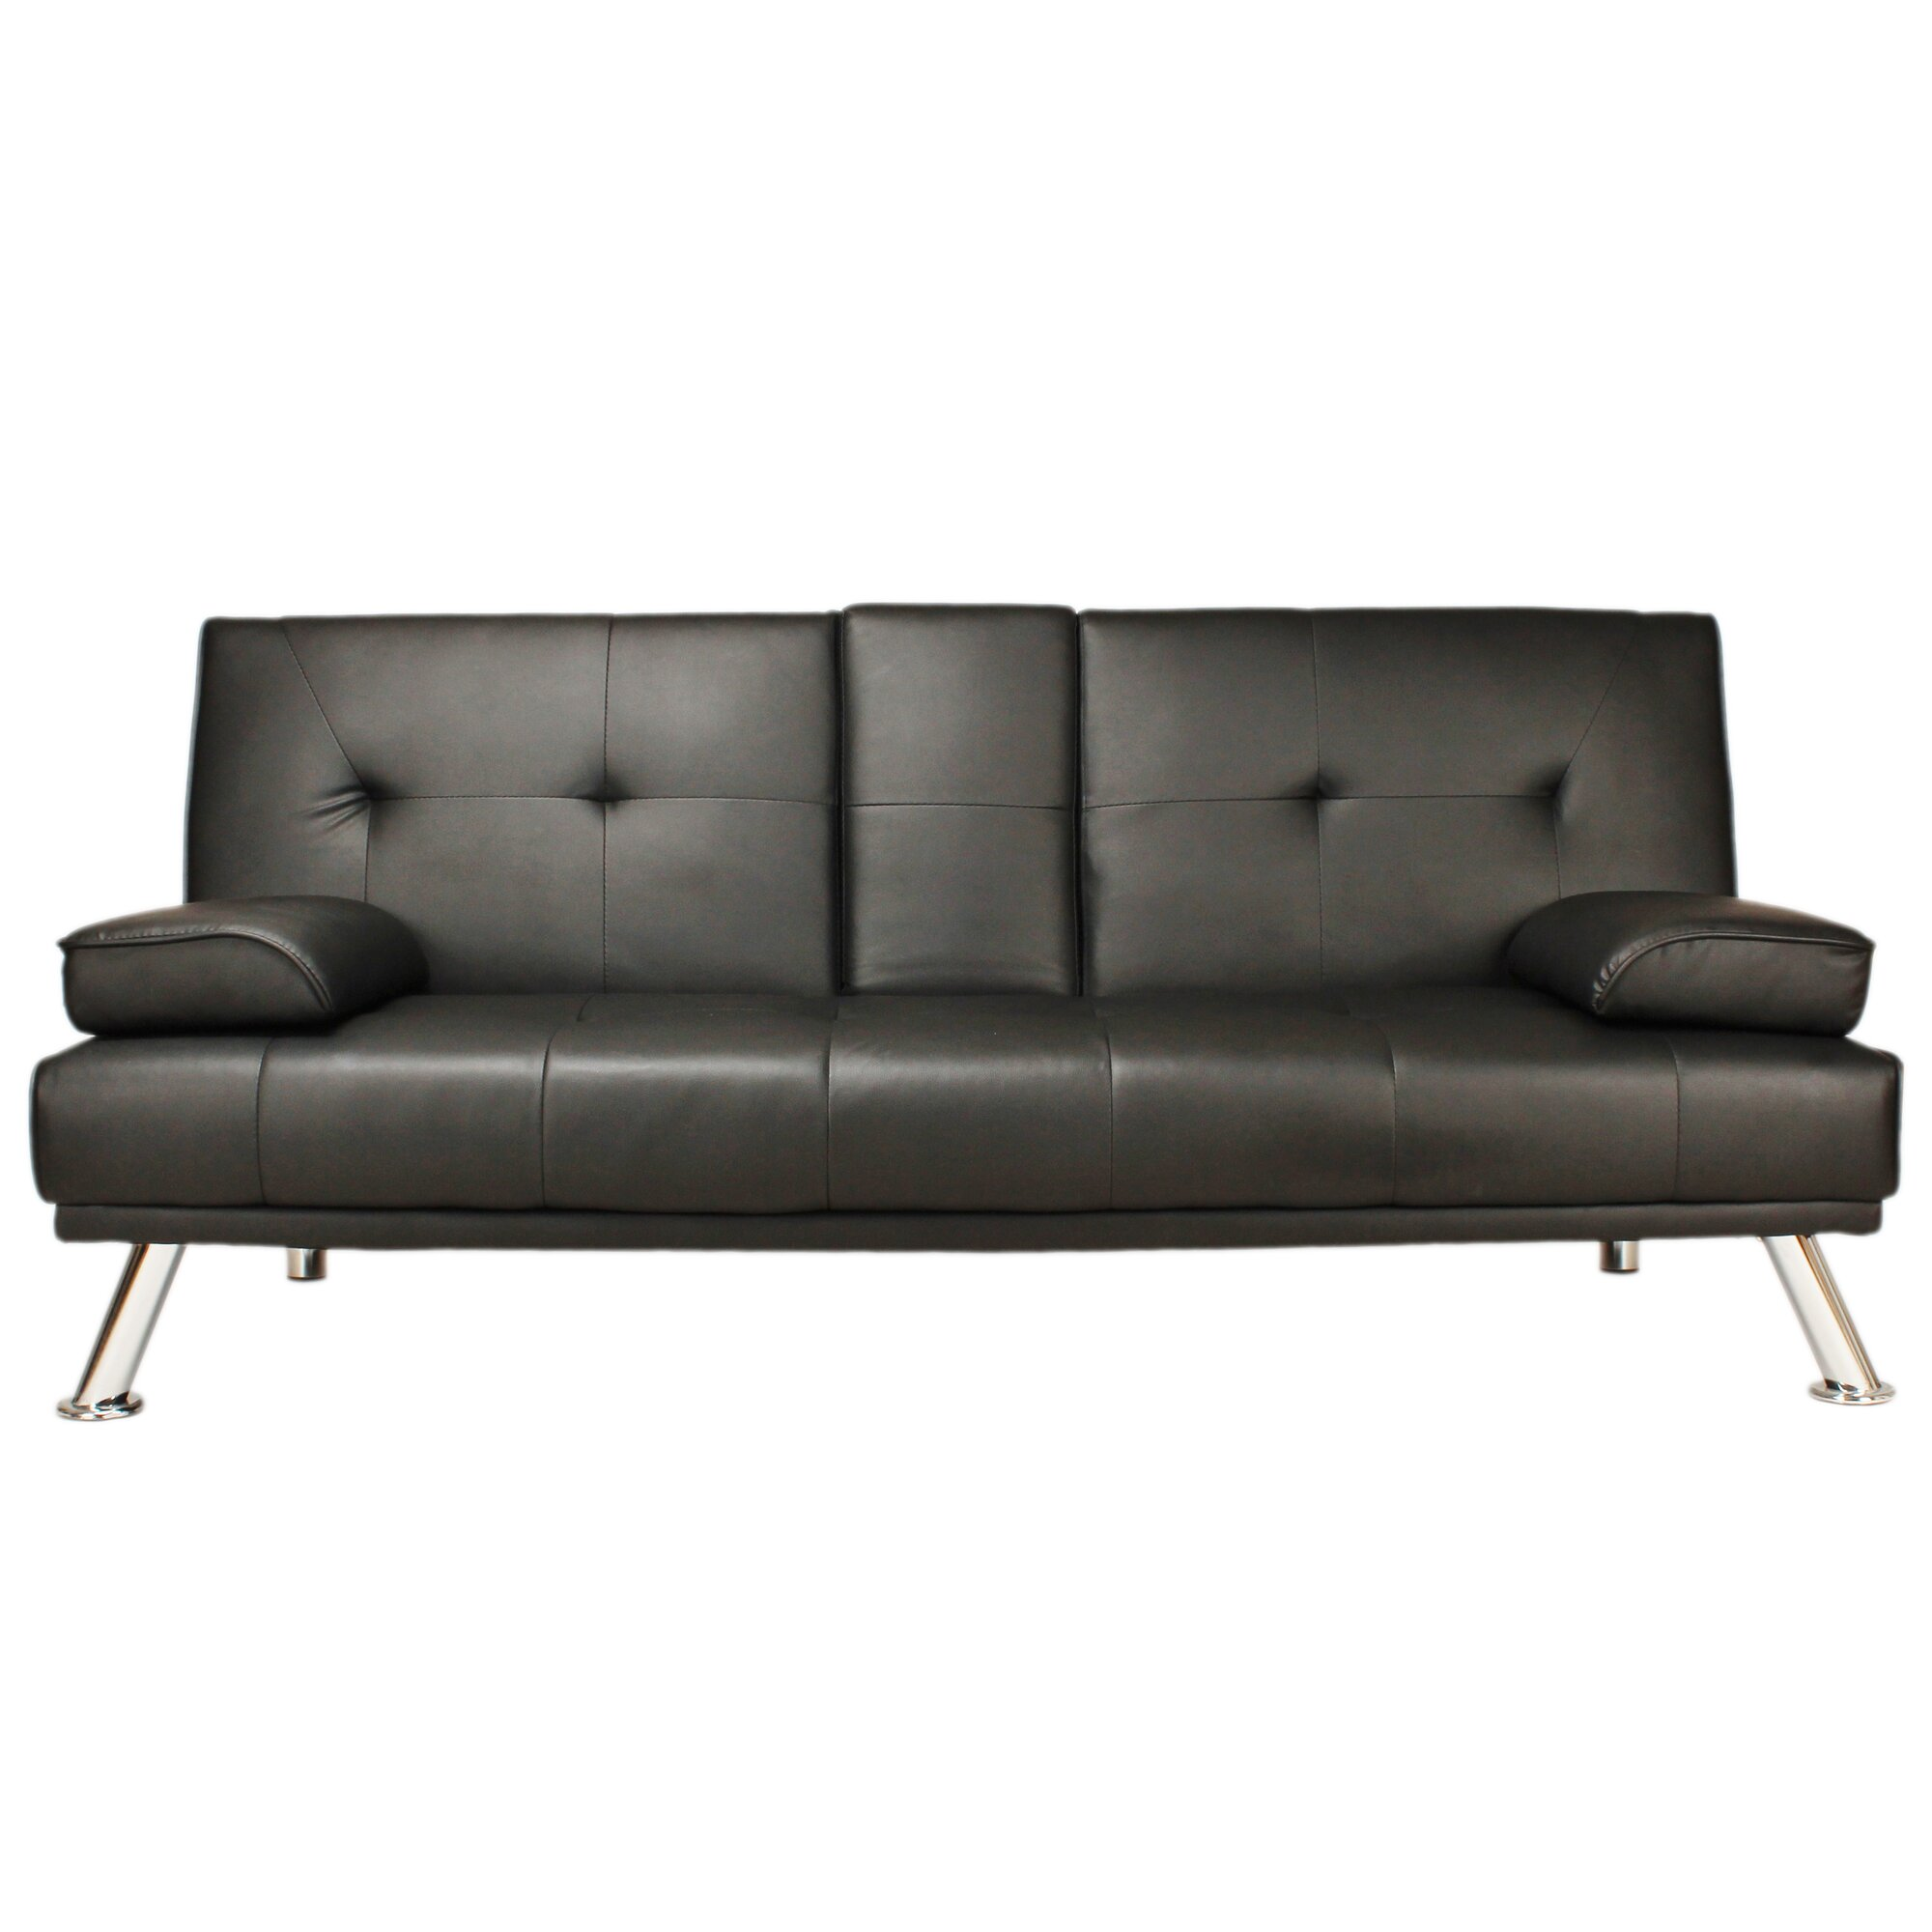 riana asia imports limited 2 sitzer schlafsofa como bewertungen. Black Bedroom Furniture Sets. Home Design Ideas